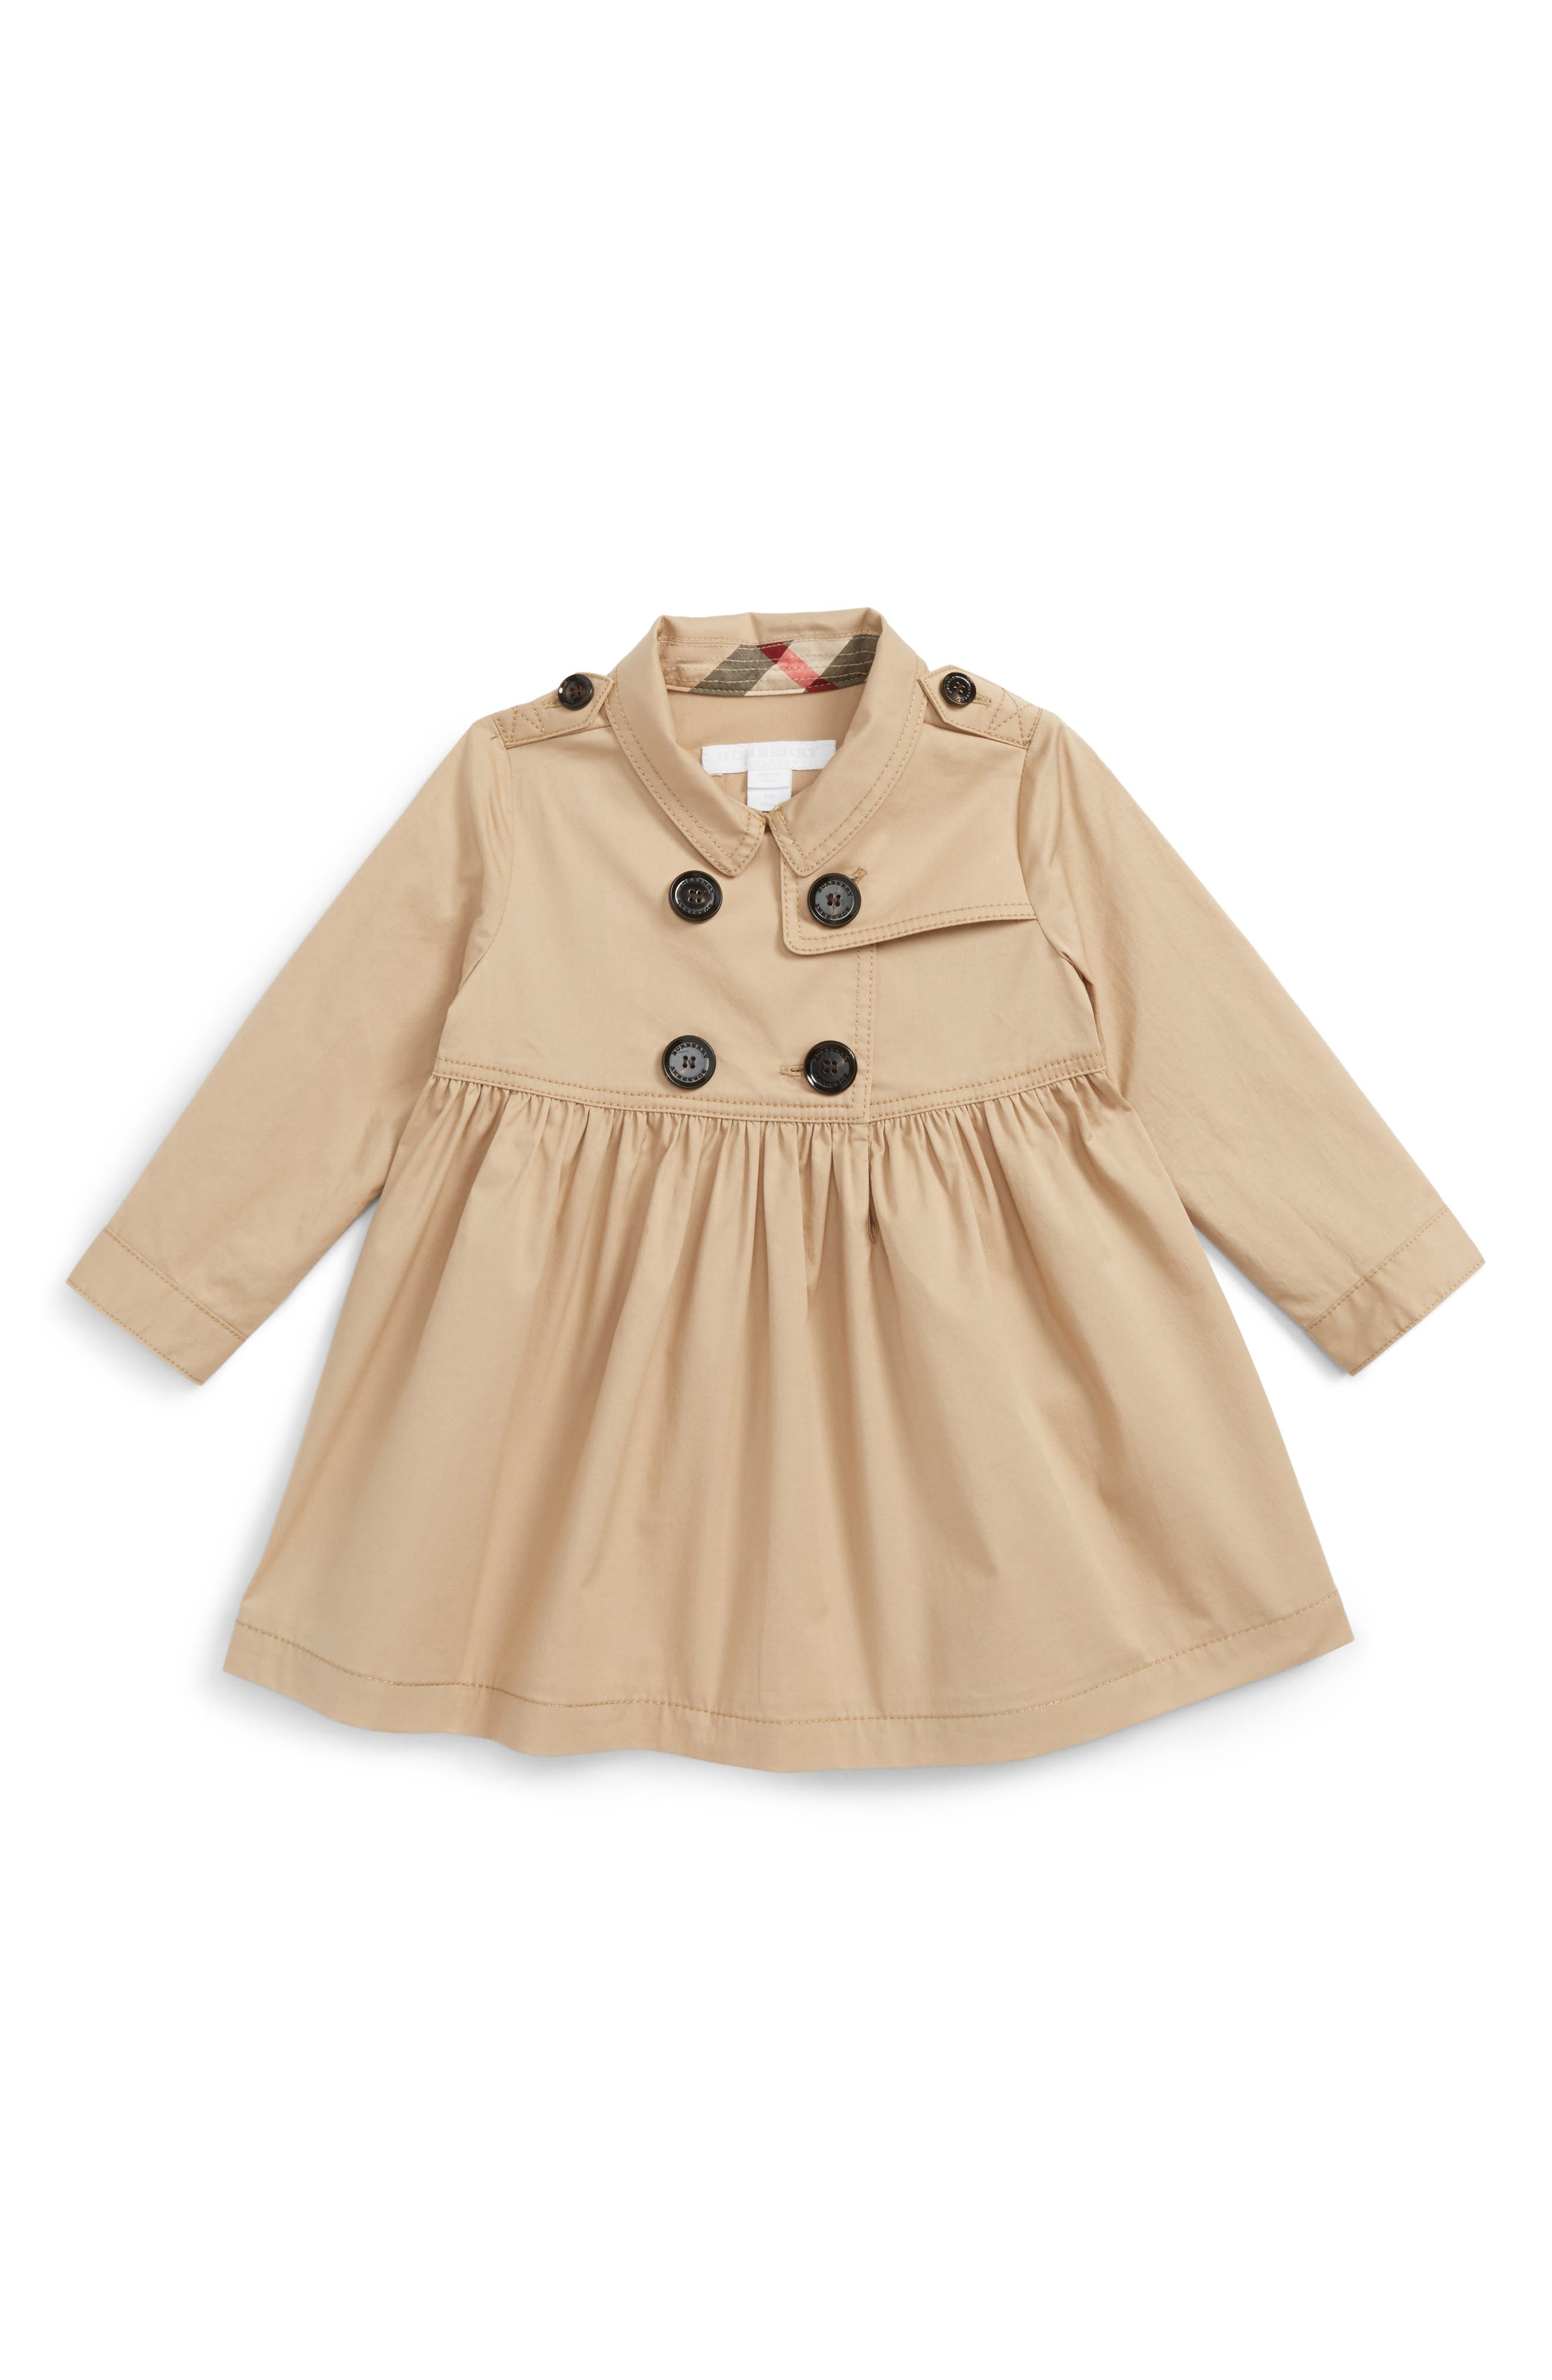 Main Image - Burberry Lillybeth Dress (Baby Girls)